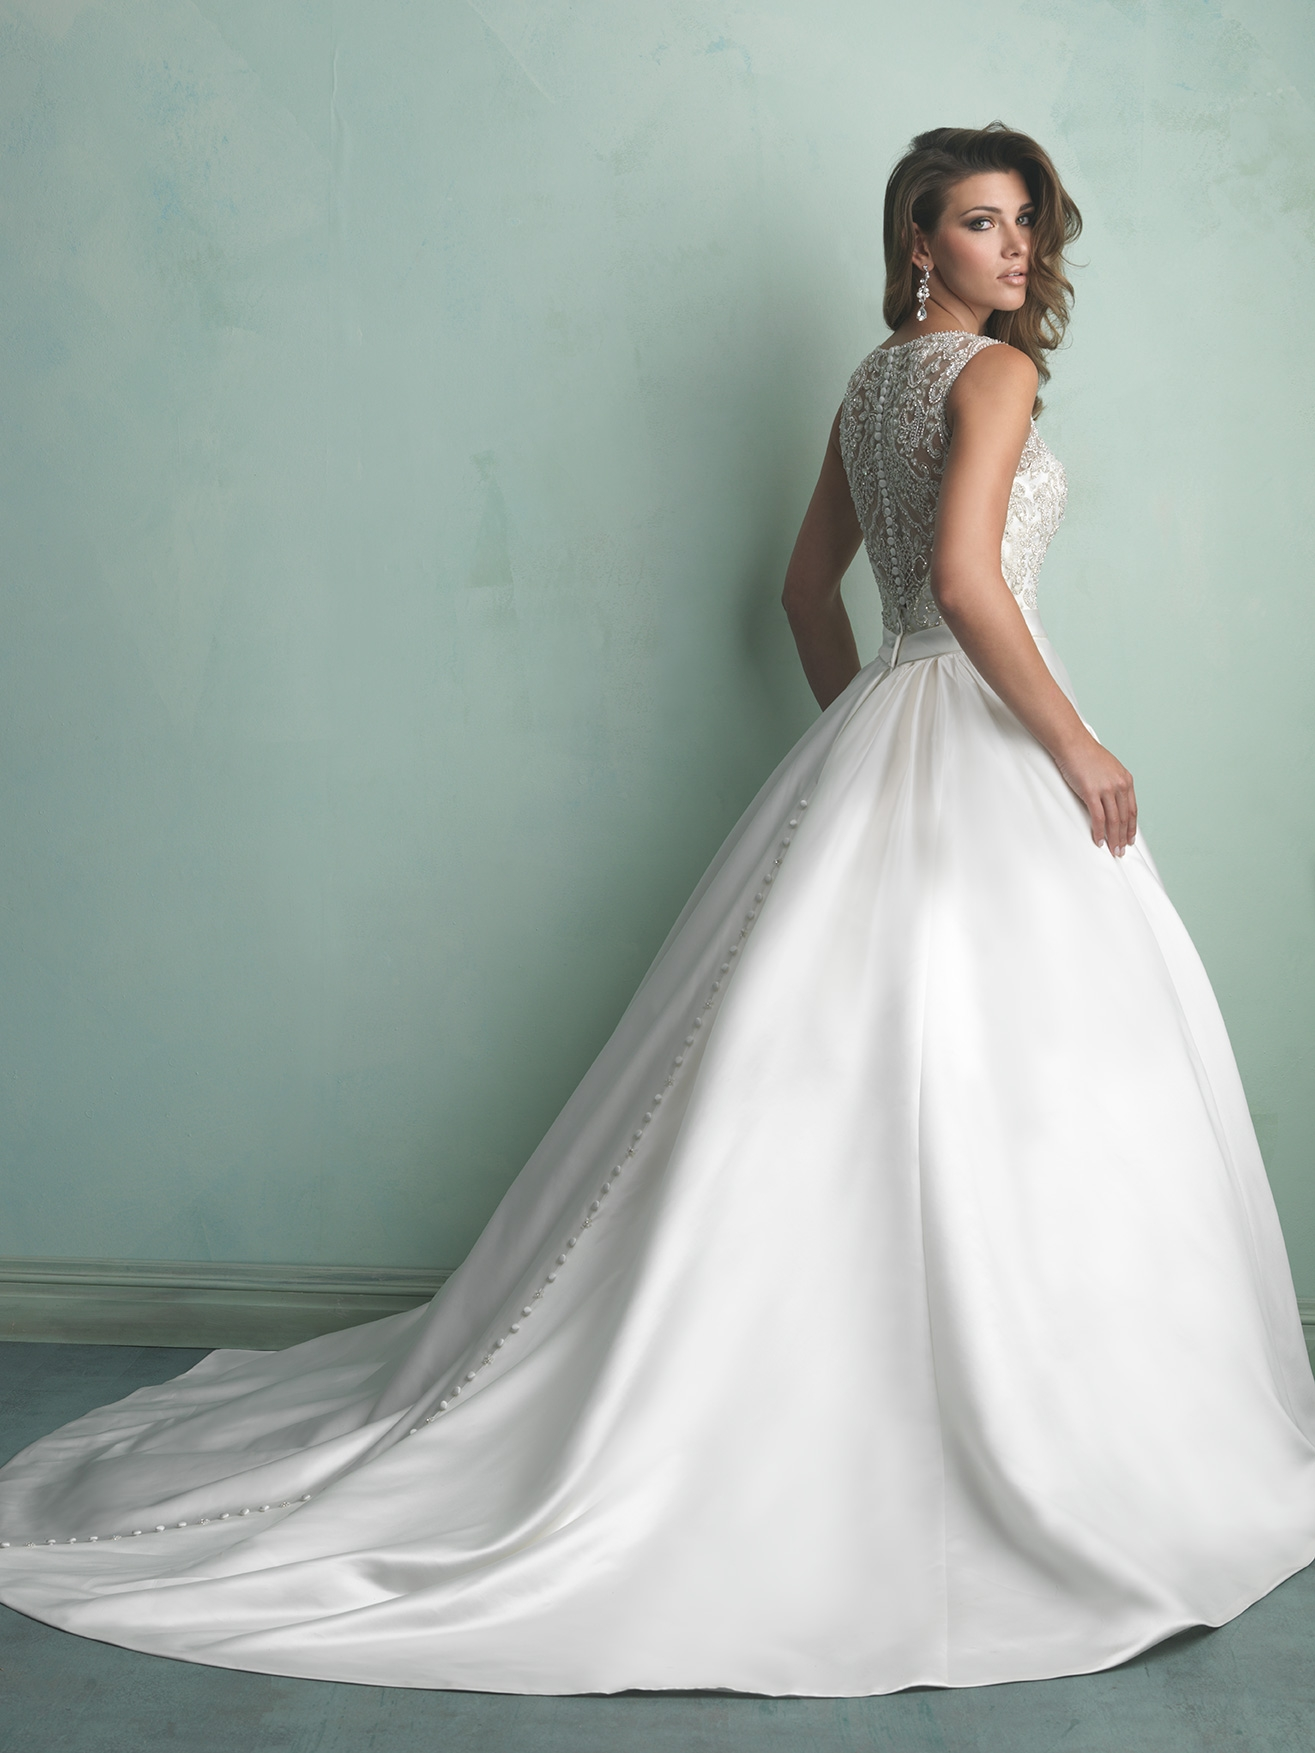 3 Stunning Plus Size Satin Ballgown Wedding Dresses - Strut Bridal Salon